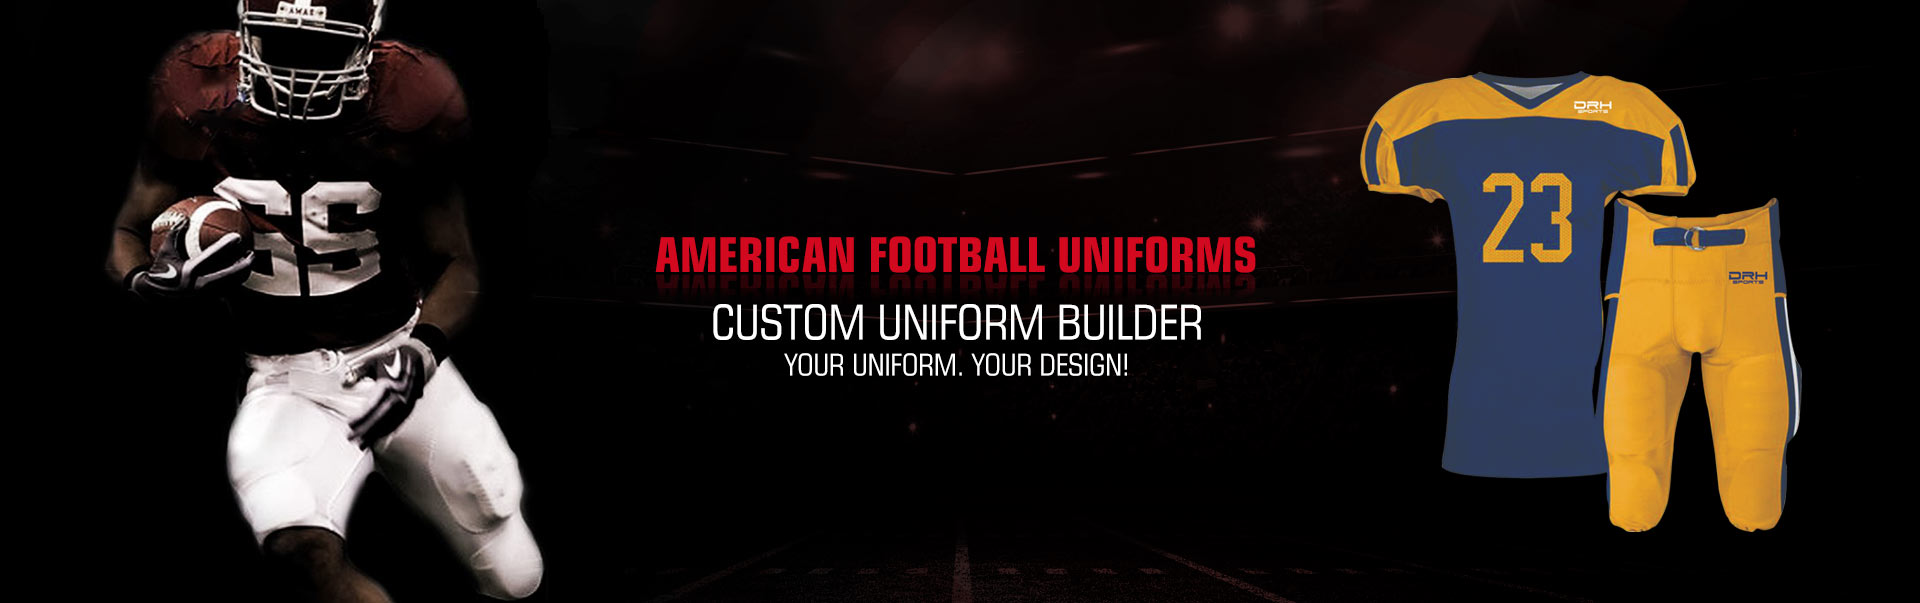 American Football Uniform Wholesaler, Suppliers in Hildesheim